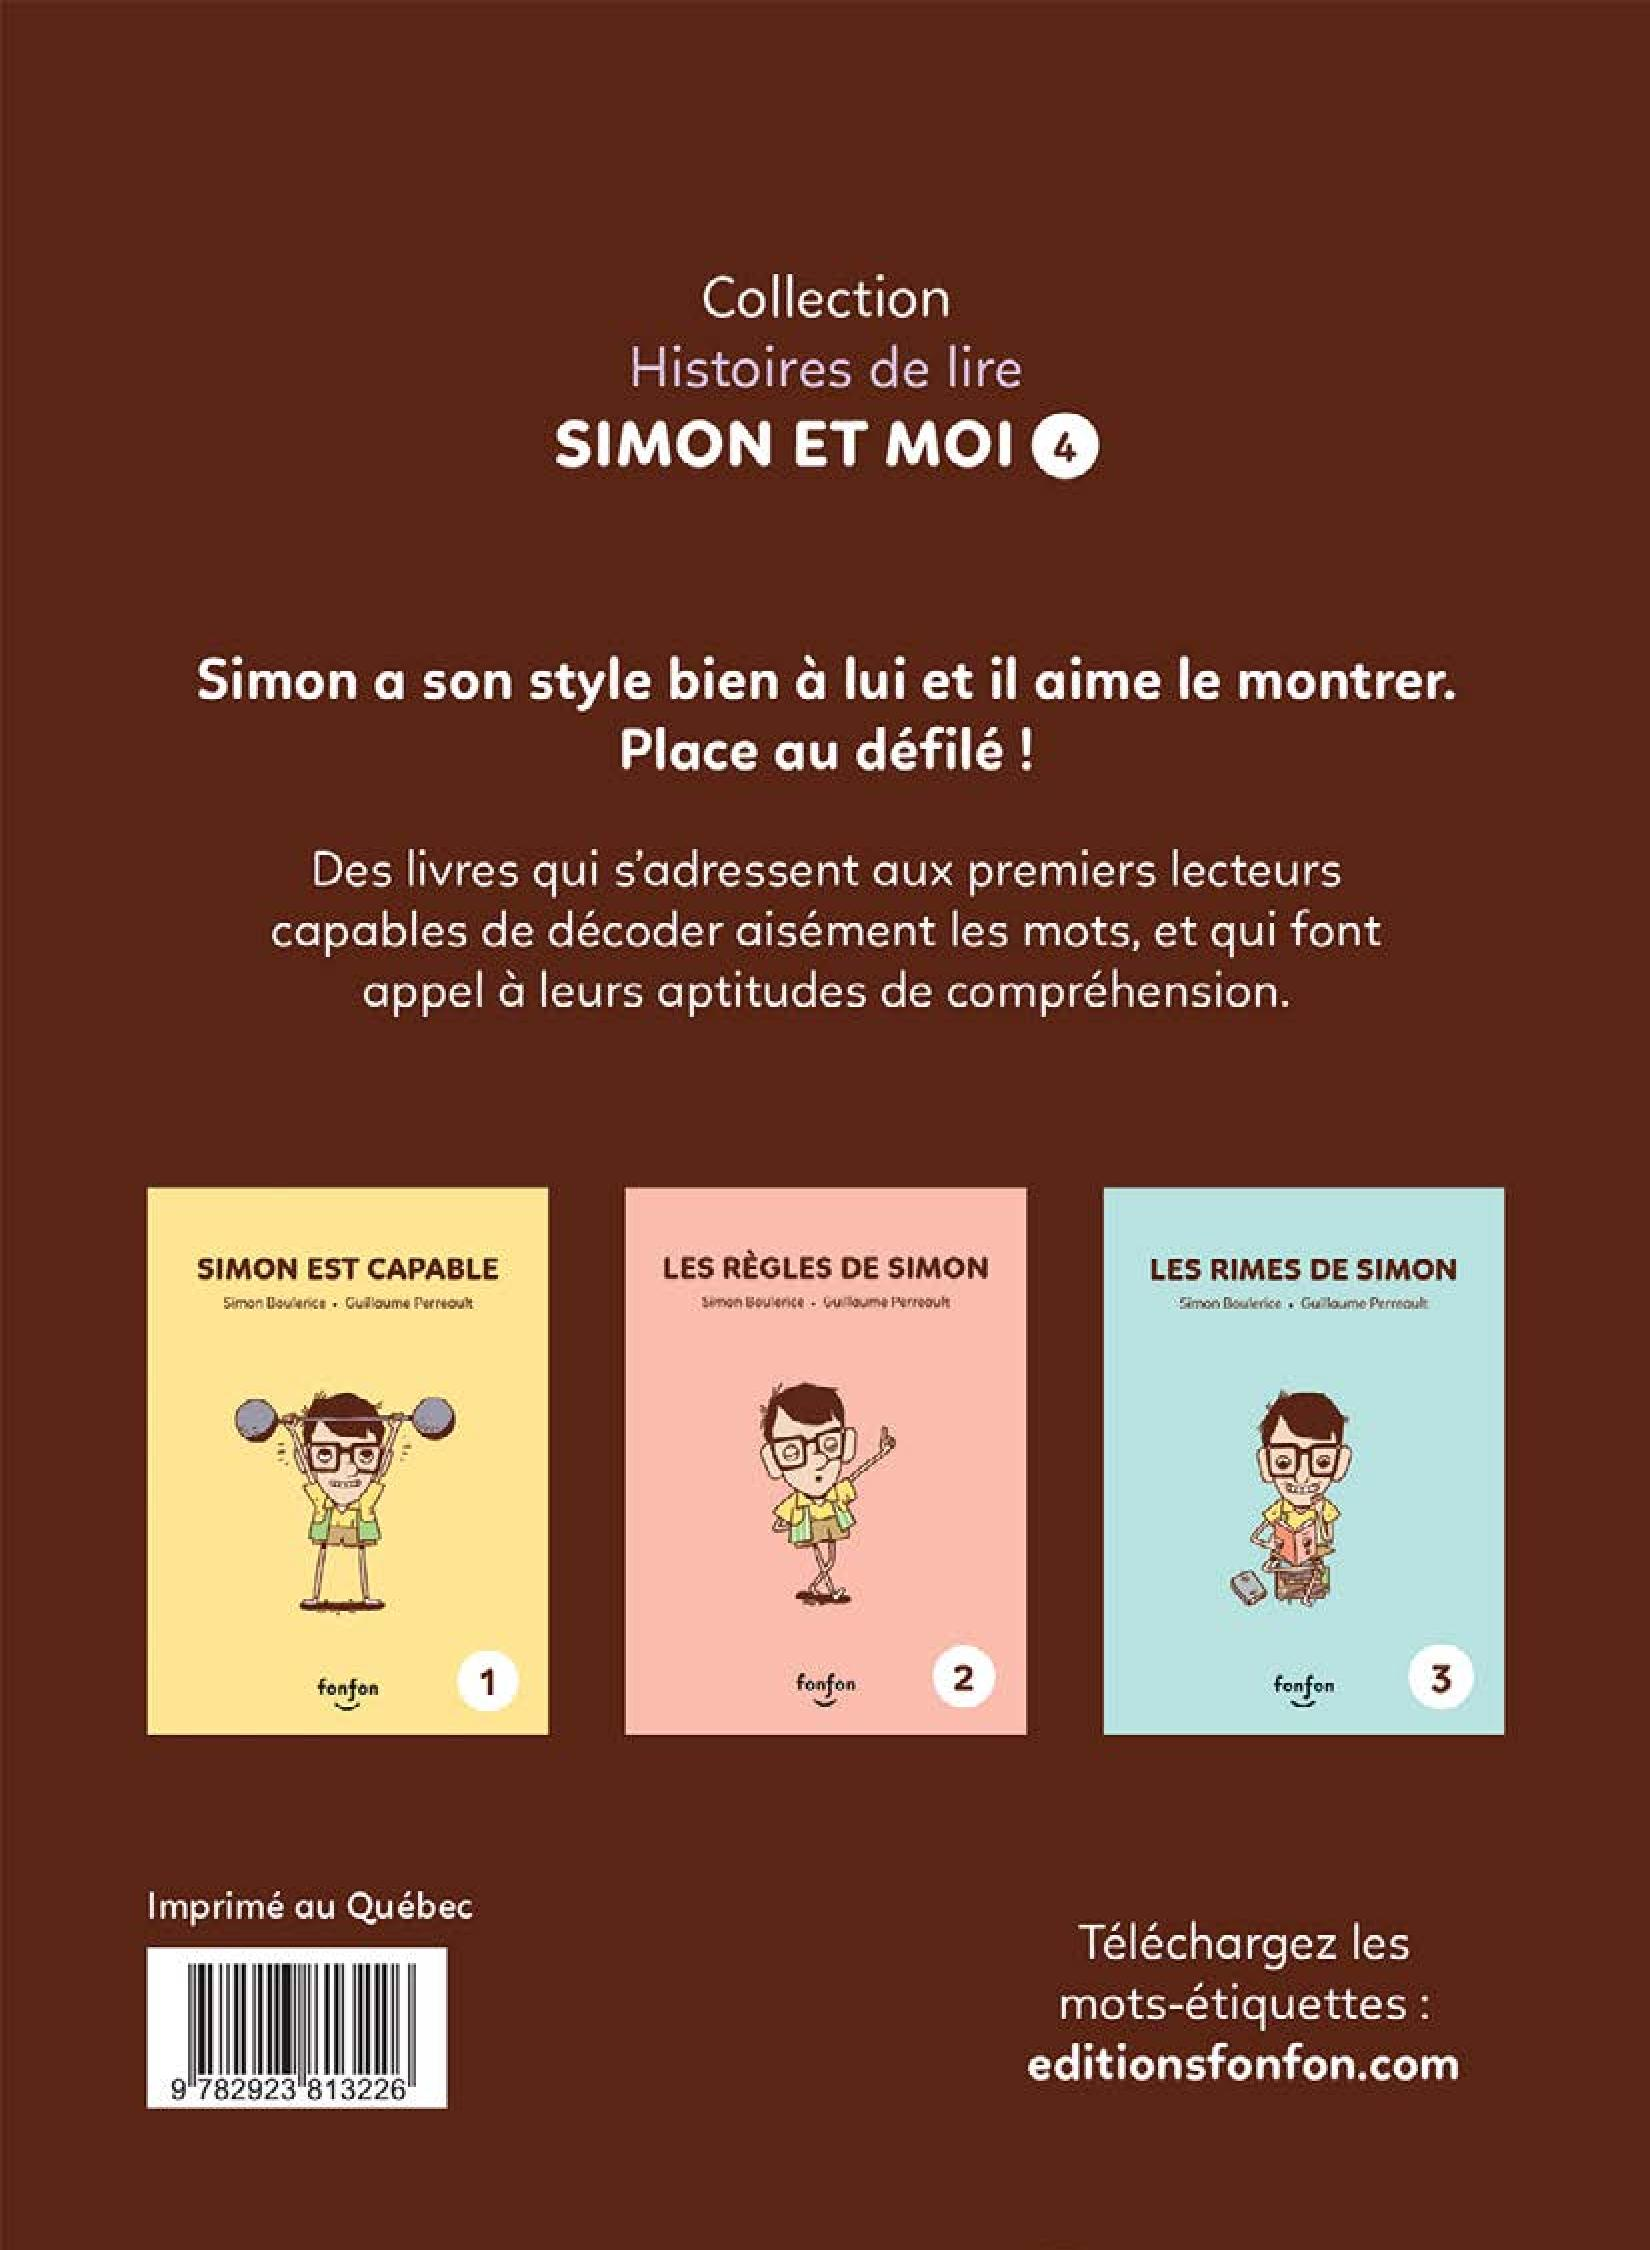 Simon et moi T.4 : Simon la carte de mode, Guillaume Perreault revers